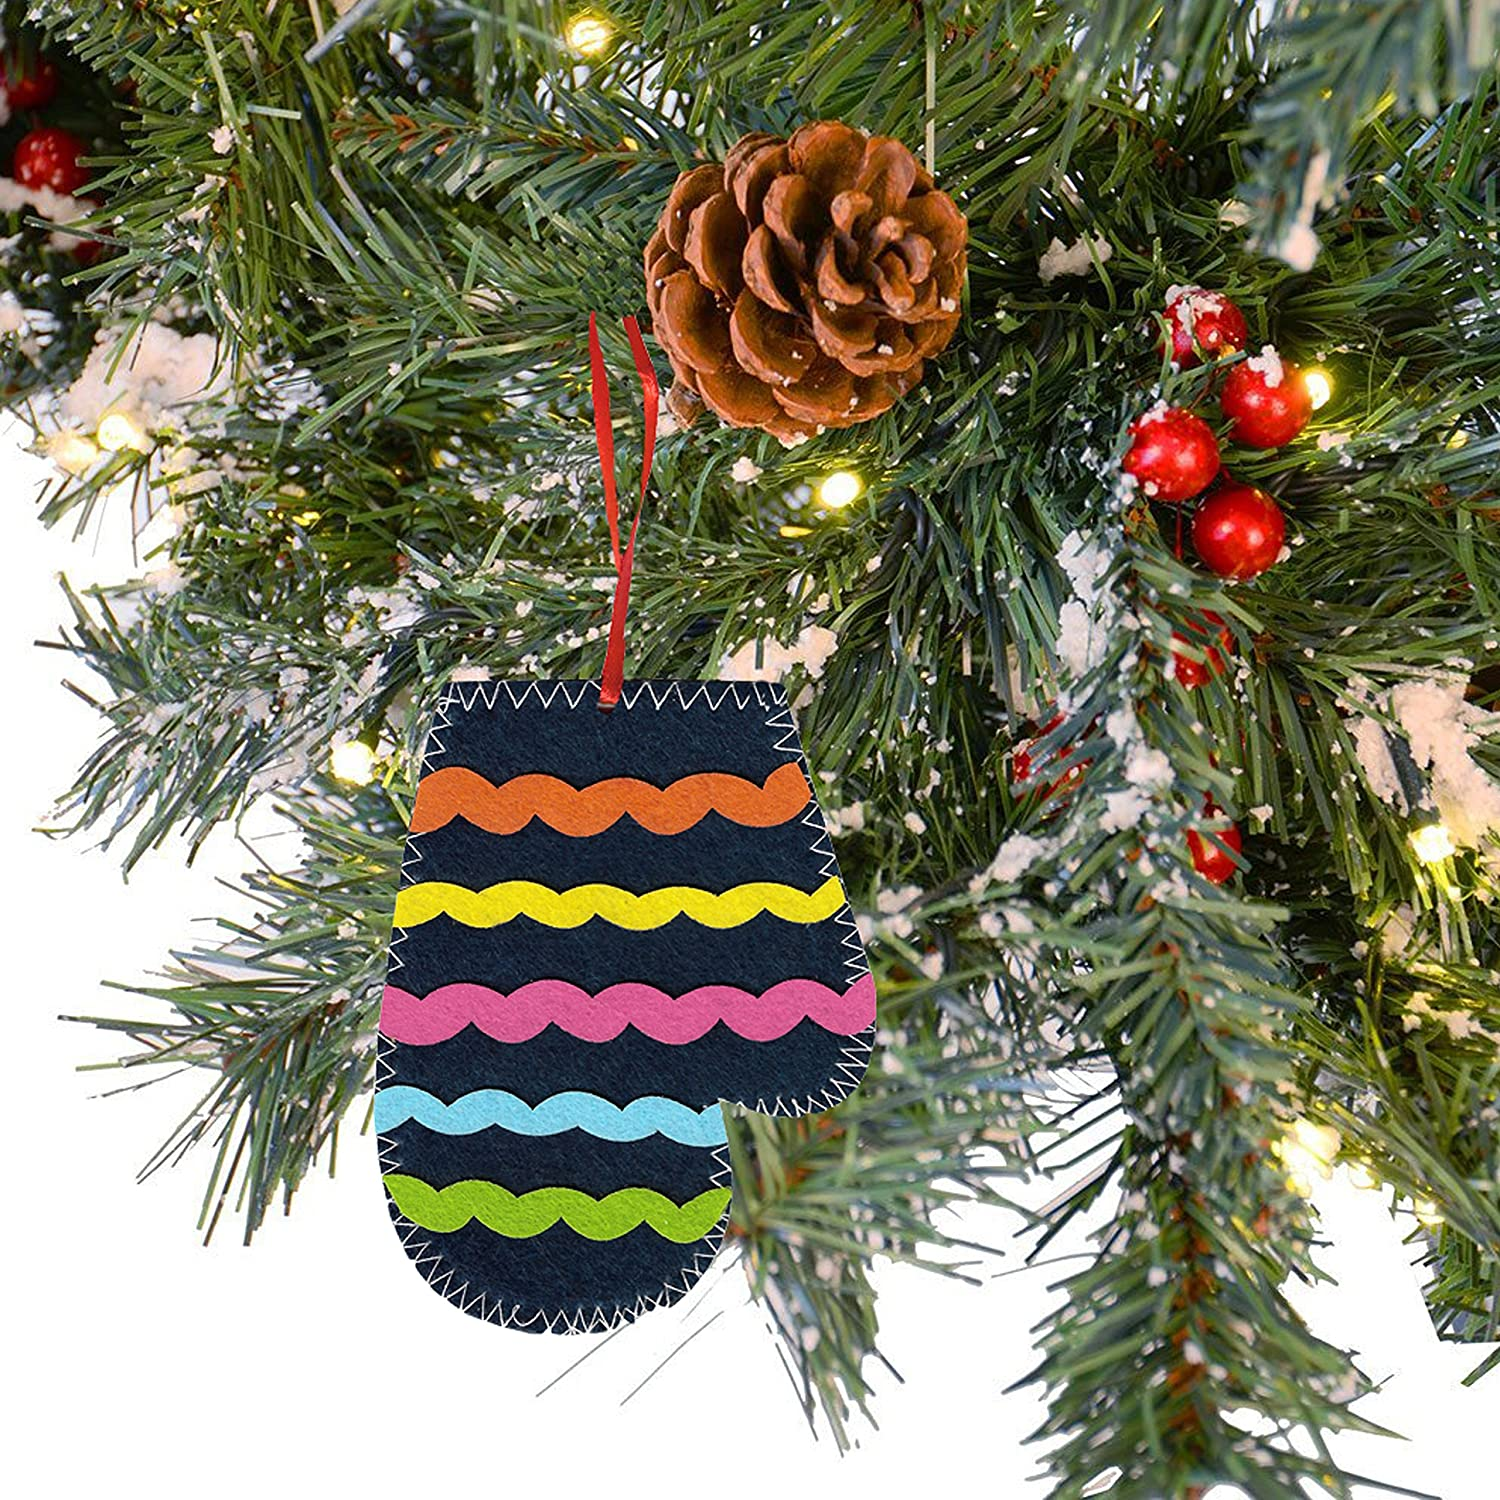 6 Oxford Novelties 6//12 Make Your Own DIY Felt Christmas Xmas Tree Hanger Decorations With PUFFY STICKERS